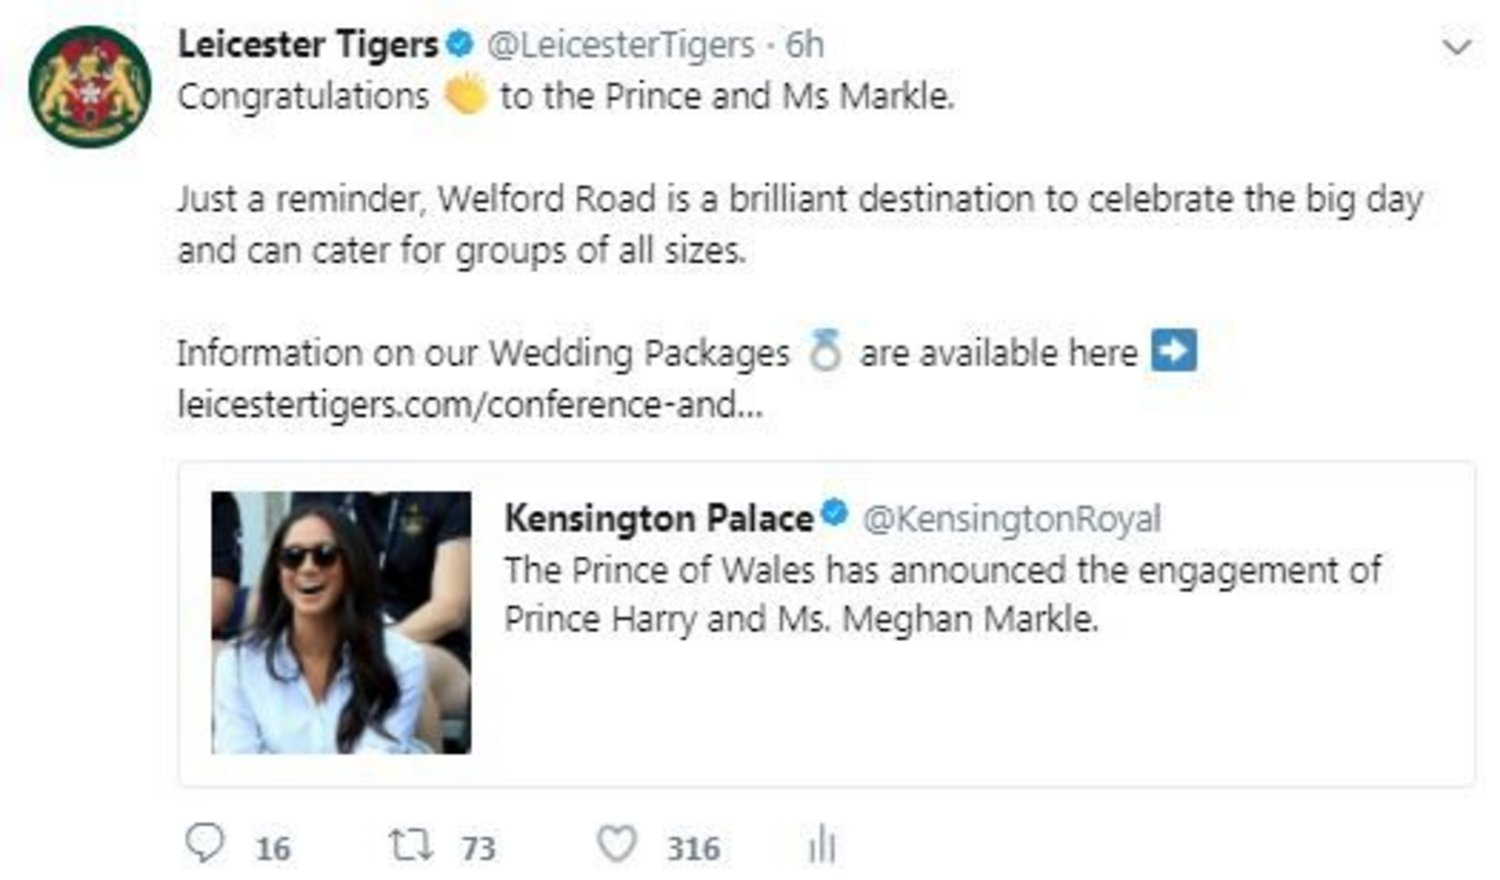 Prince Harry Meghan Markle tweet